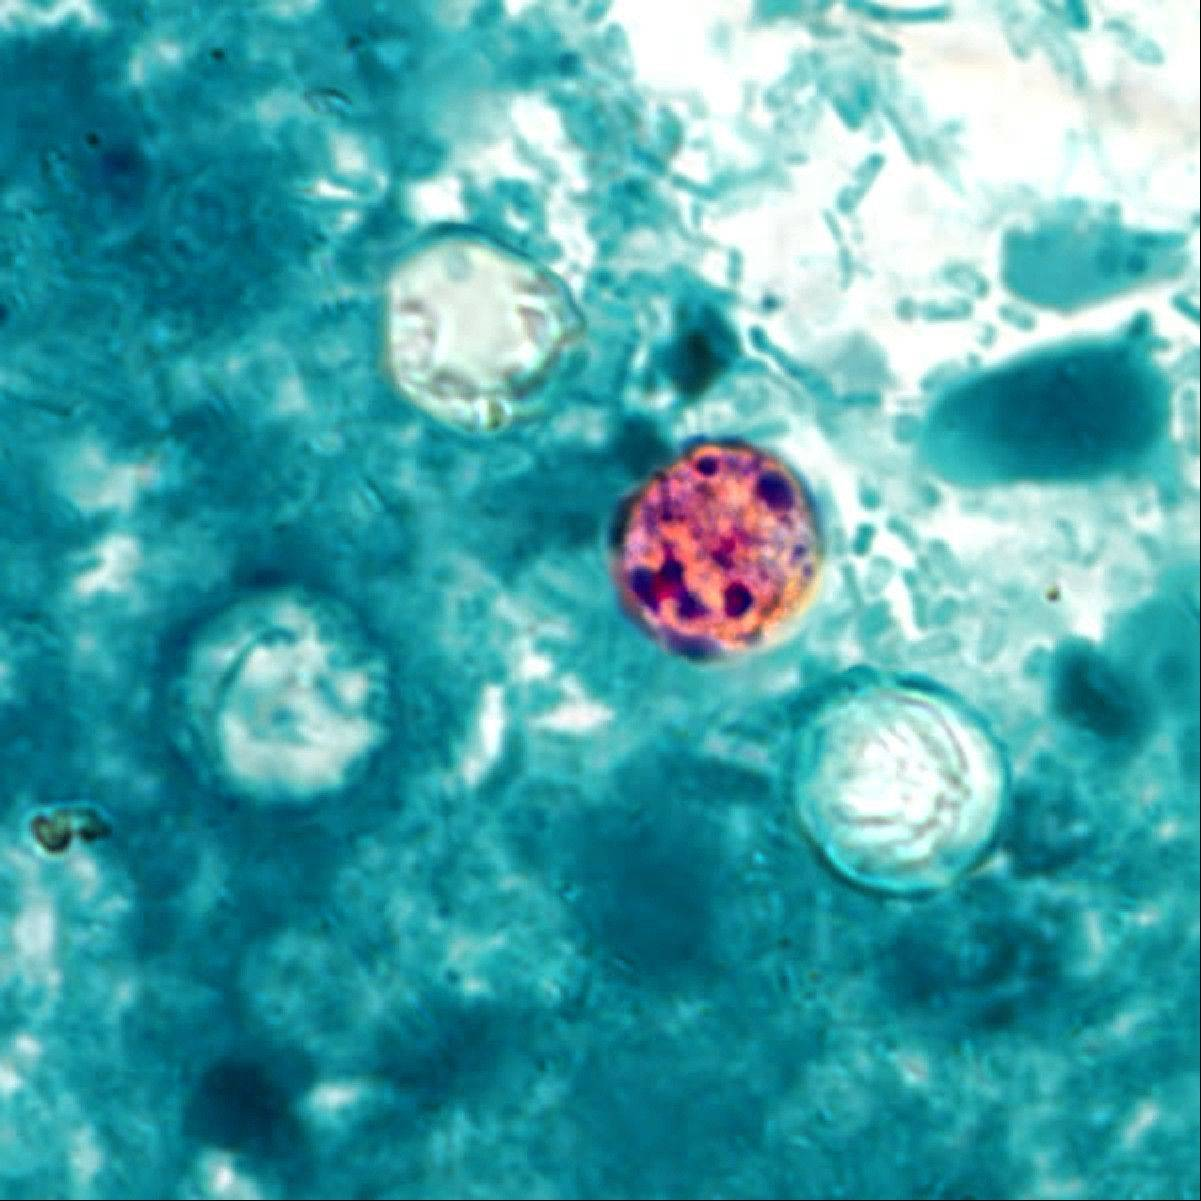 In this image provided by the Centers for Disease Control and Prevention, a photomicrograph of a fresh stool sample, which had been prepared using a 10% formalin solution, and stained with modified acid-fast stain, reveals the presence of four Cyclospora cayetanensis oocysts in the field of view.